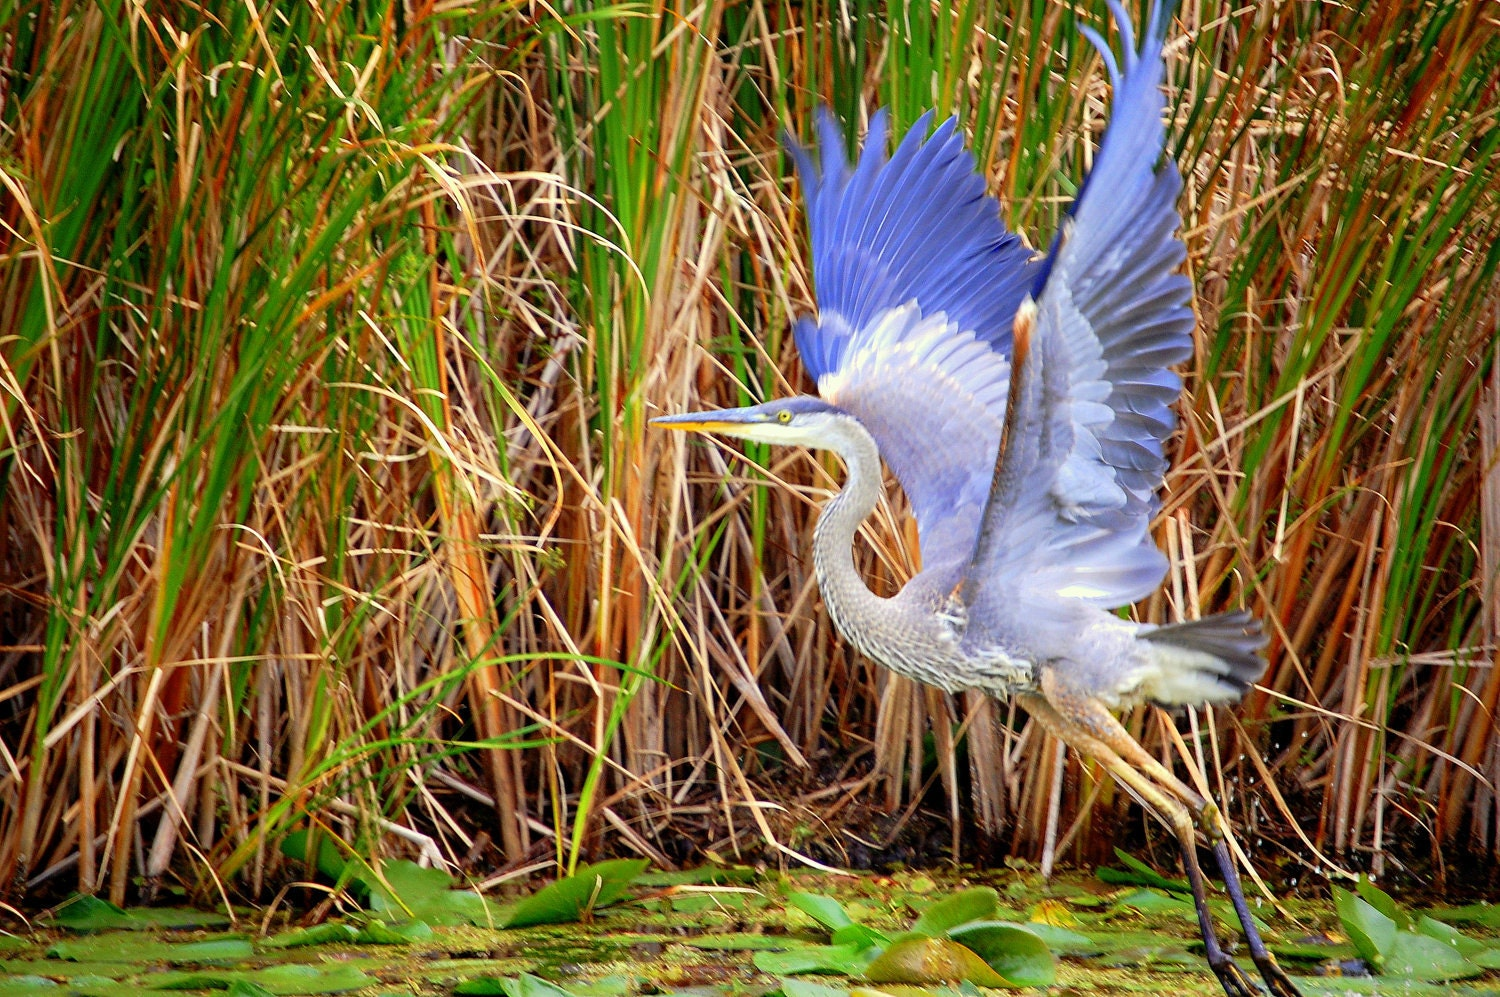 Great Blue Heron 16x20 Giclee Canvas Gallery Wrap Floating Frame Print Nature Photography, Fine art, Home Decor Office Decor - LindaRaeImages